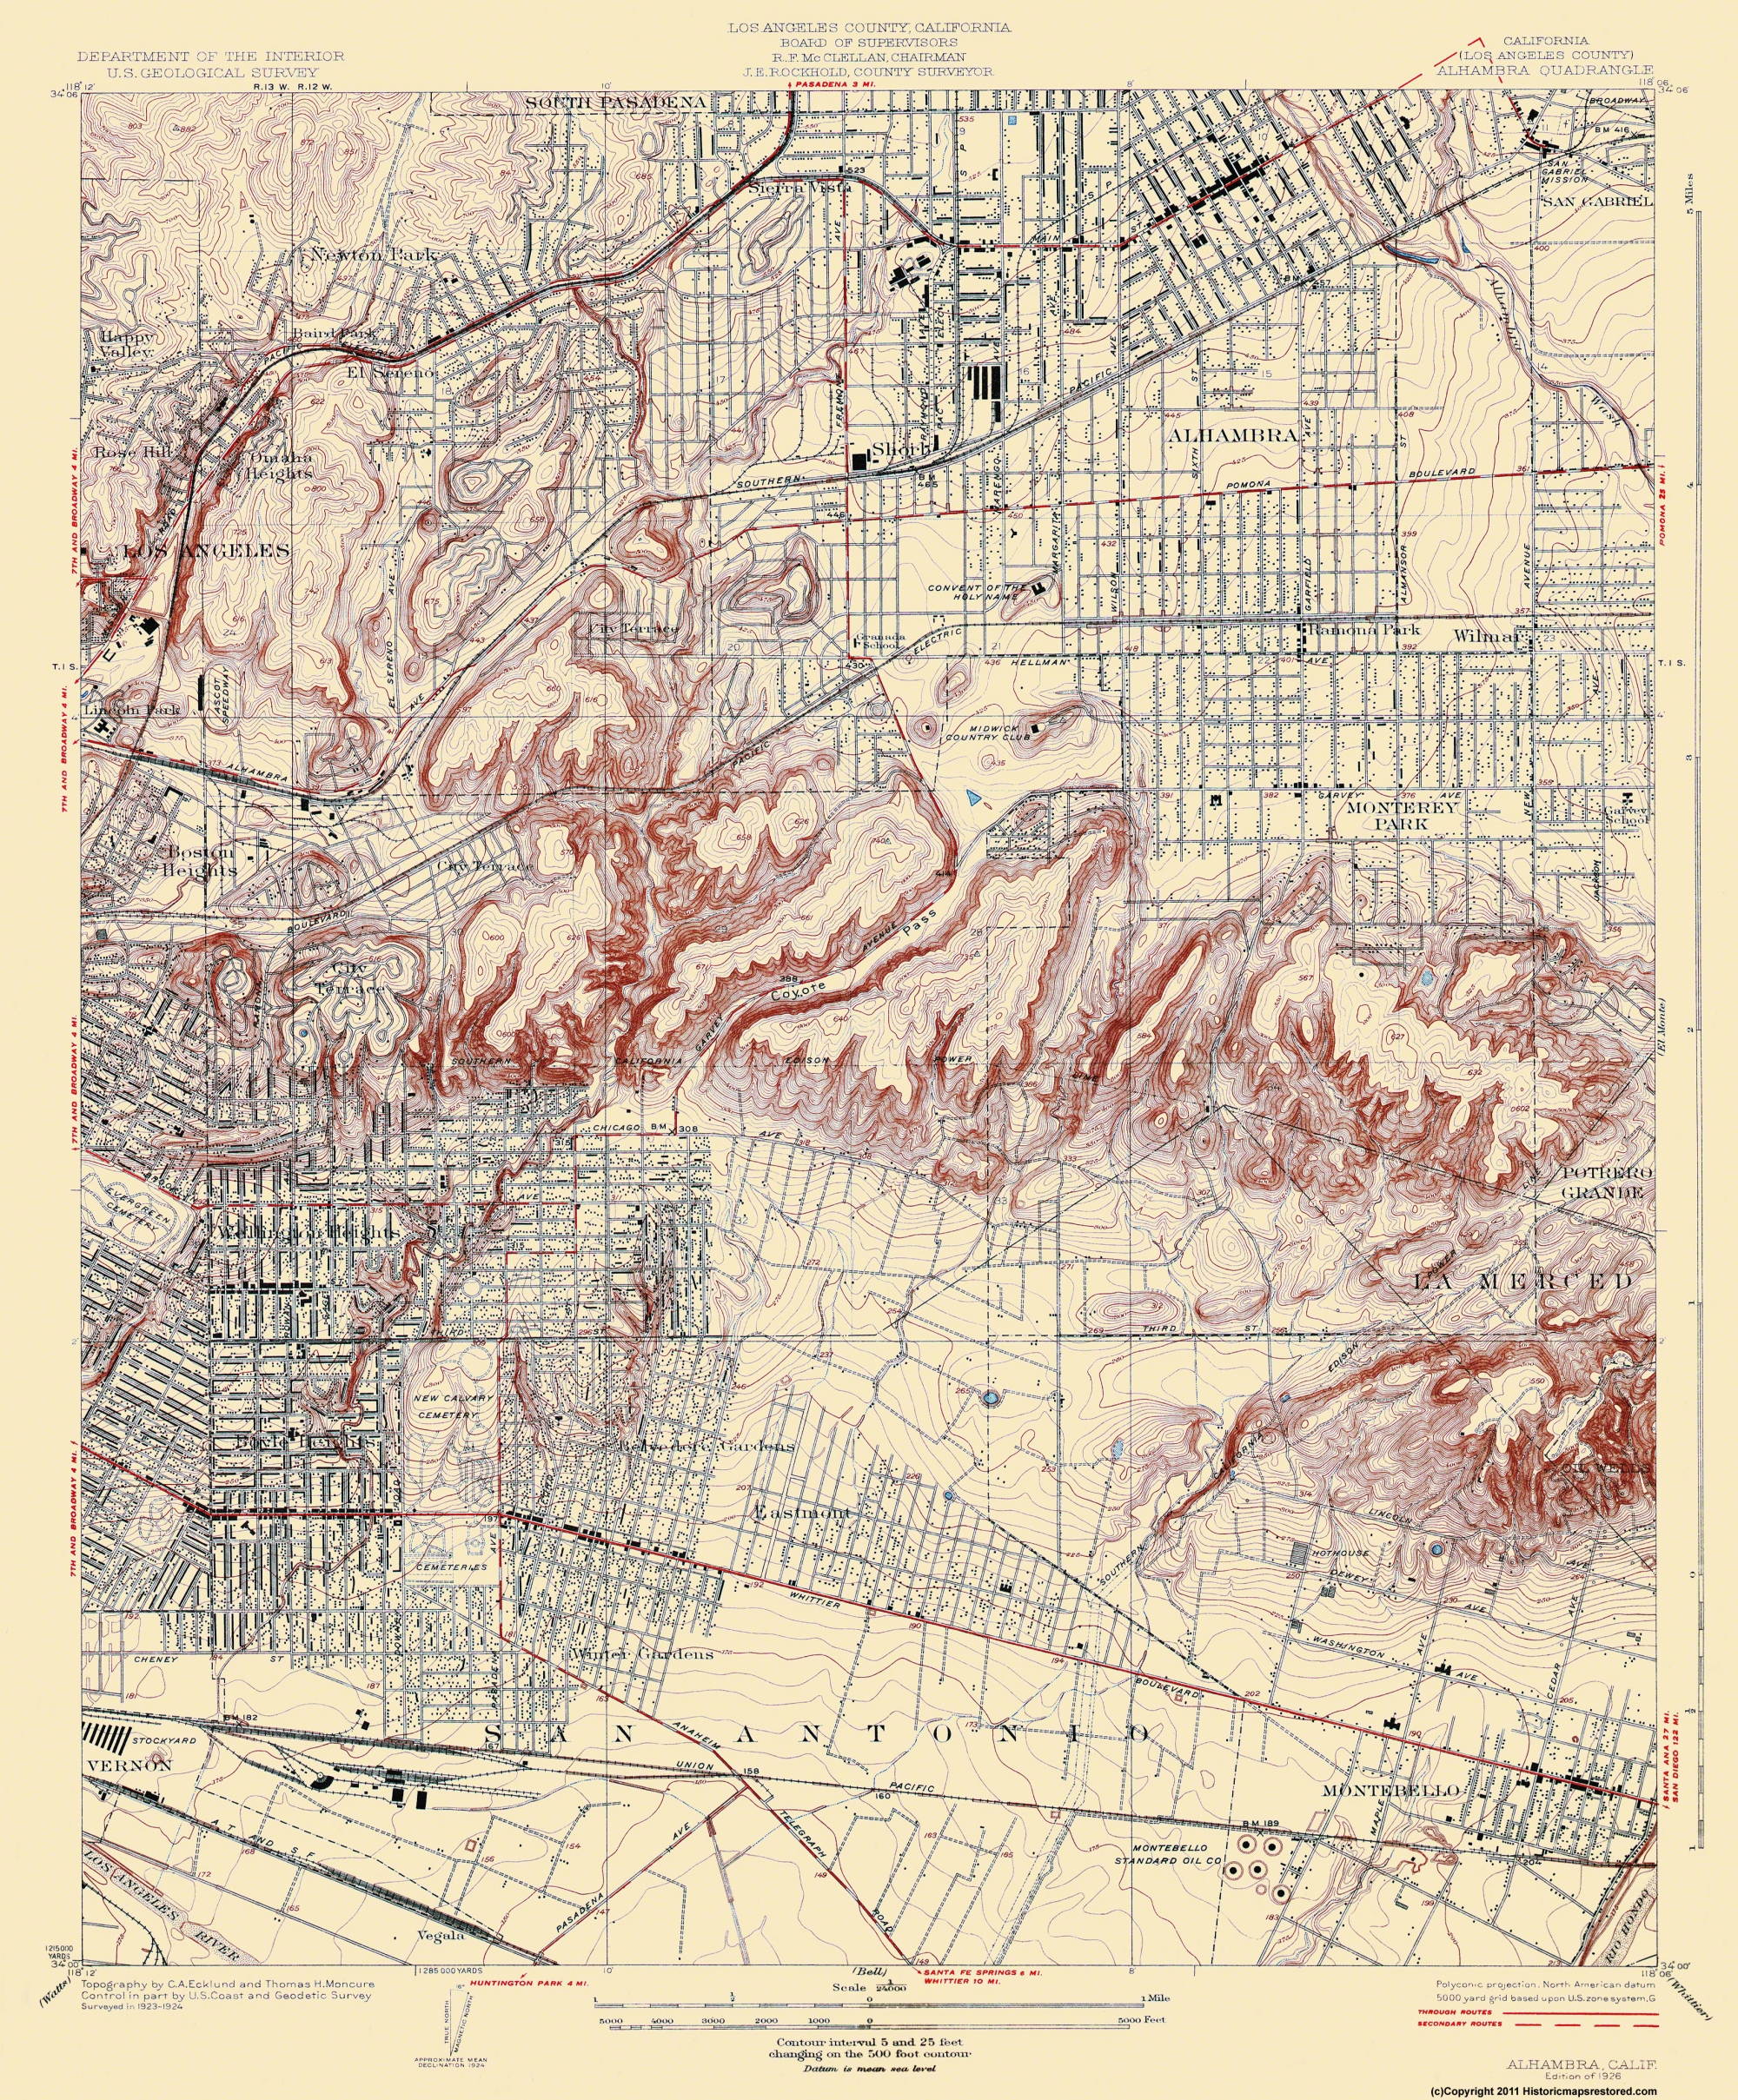 Old Topographical Map - Alhambra California 1926